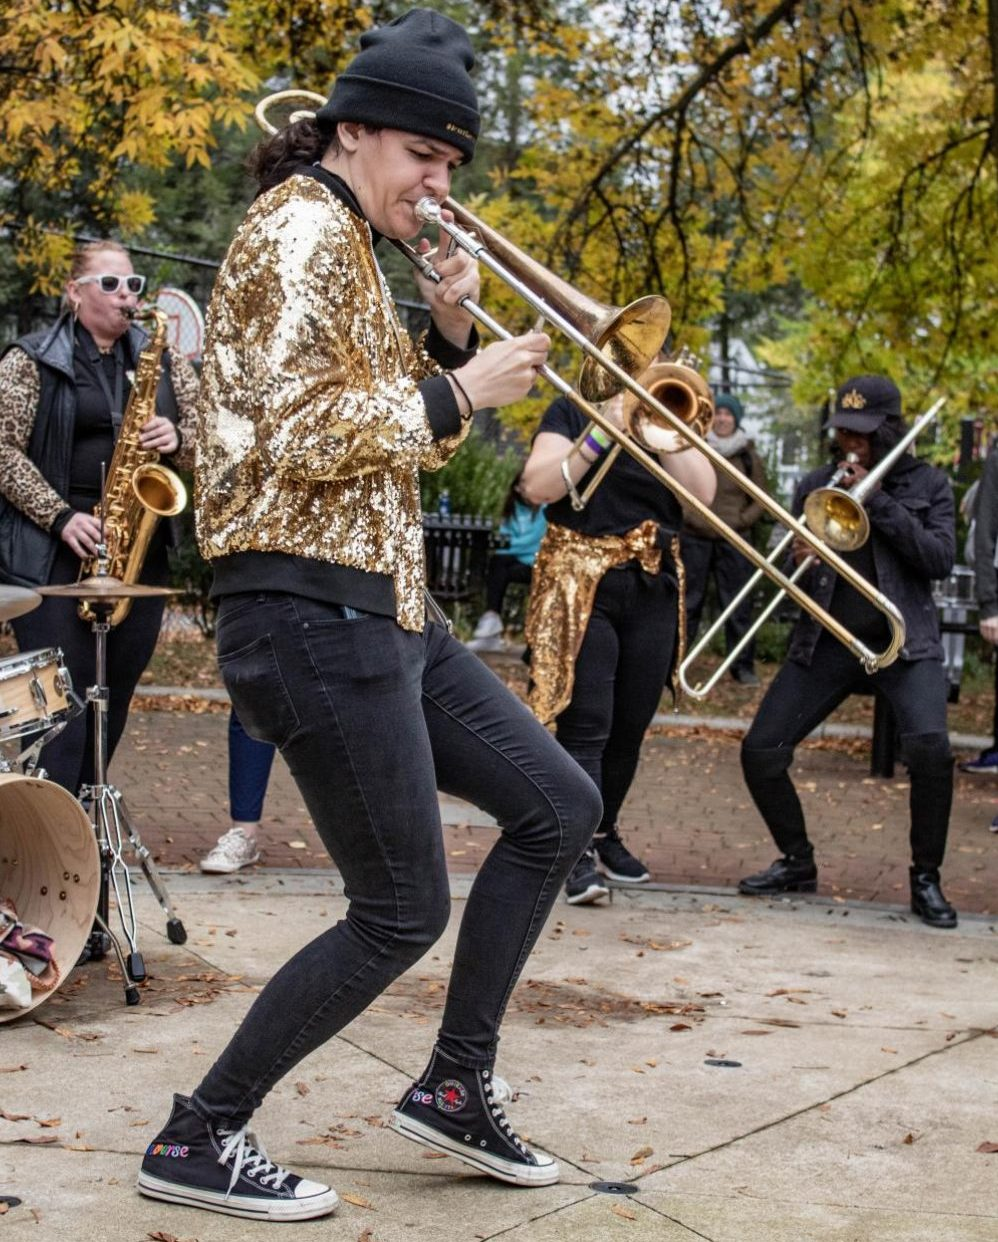 2019 HONK! Fest: Brass Bands Taking Stands